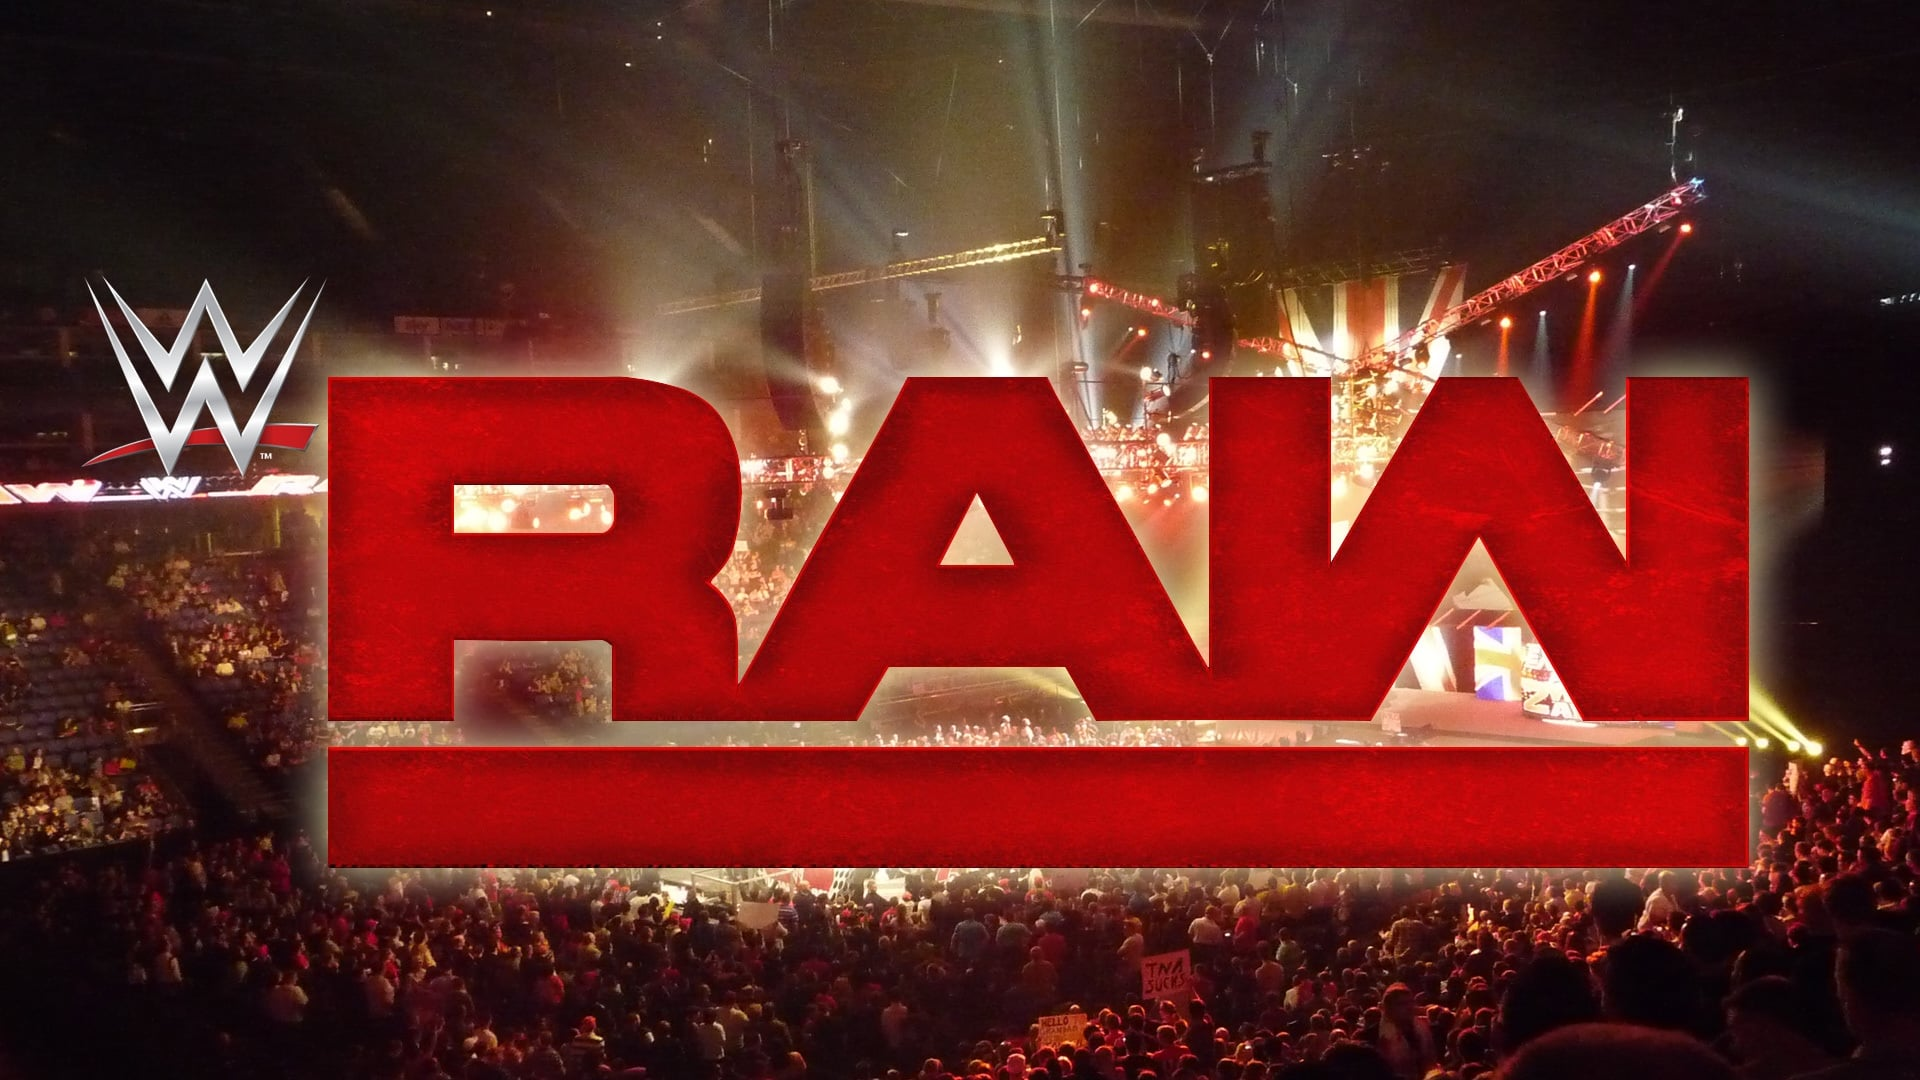 WWE Raw - Season 21 Episode 32 : August 12, 2013 (1970)